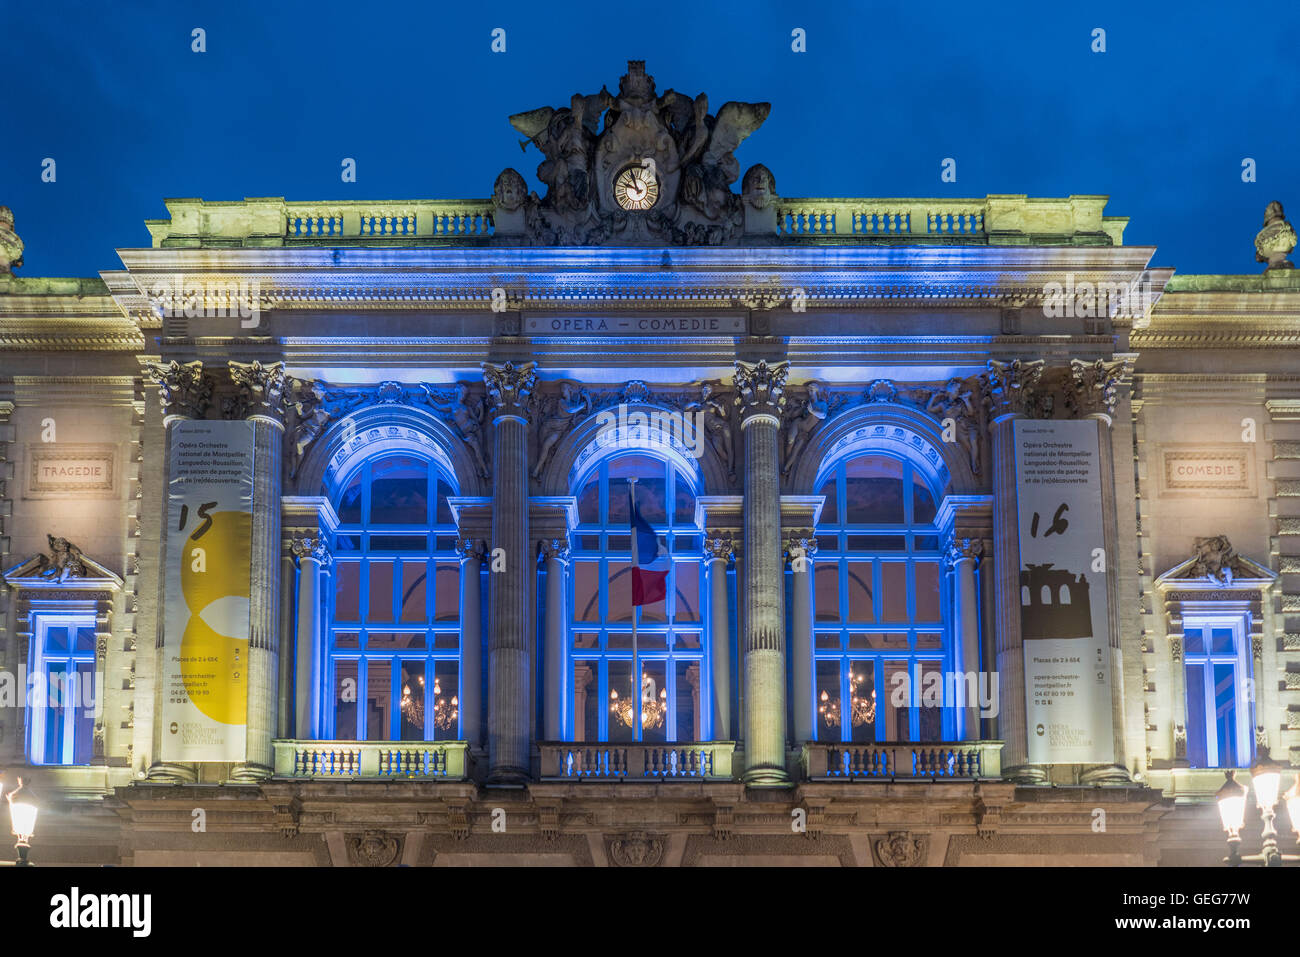 Opera, Place de la Comedie in the city of Montpellier at night, Languedoc-Roussillon, France Stock Photo